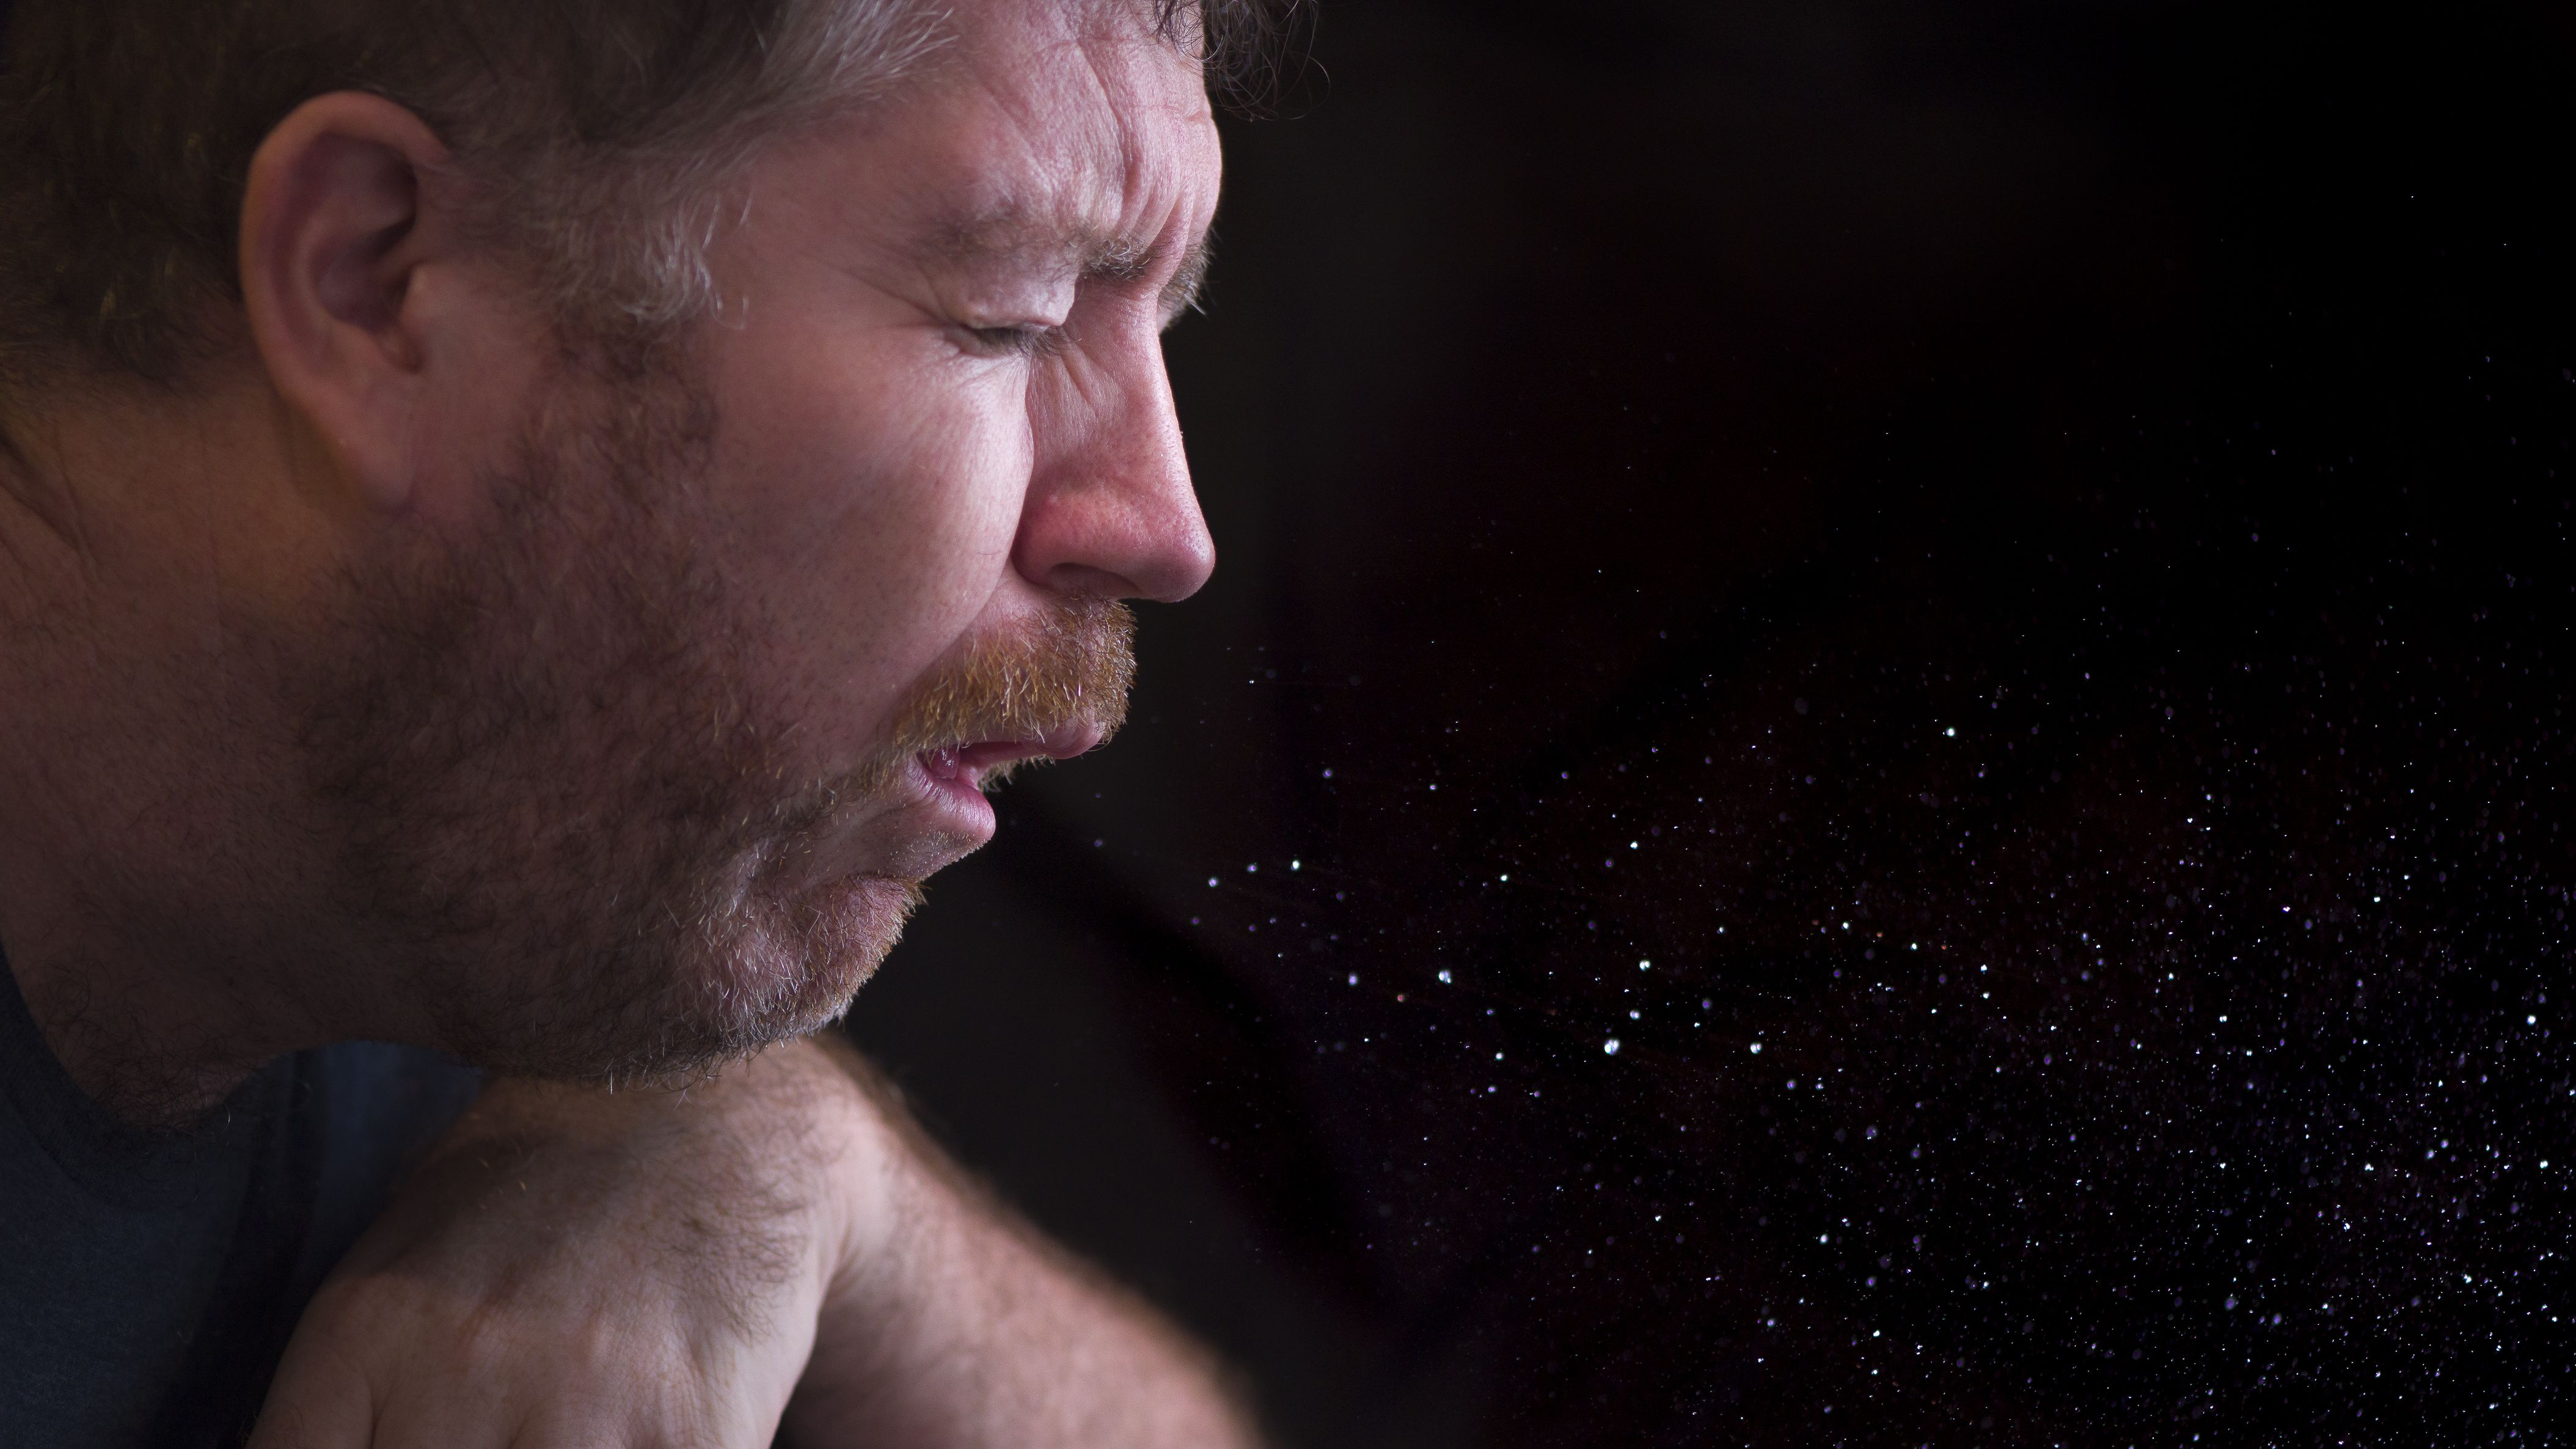 Man sneezing particles in the air